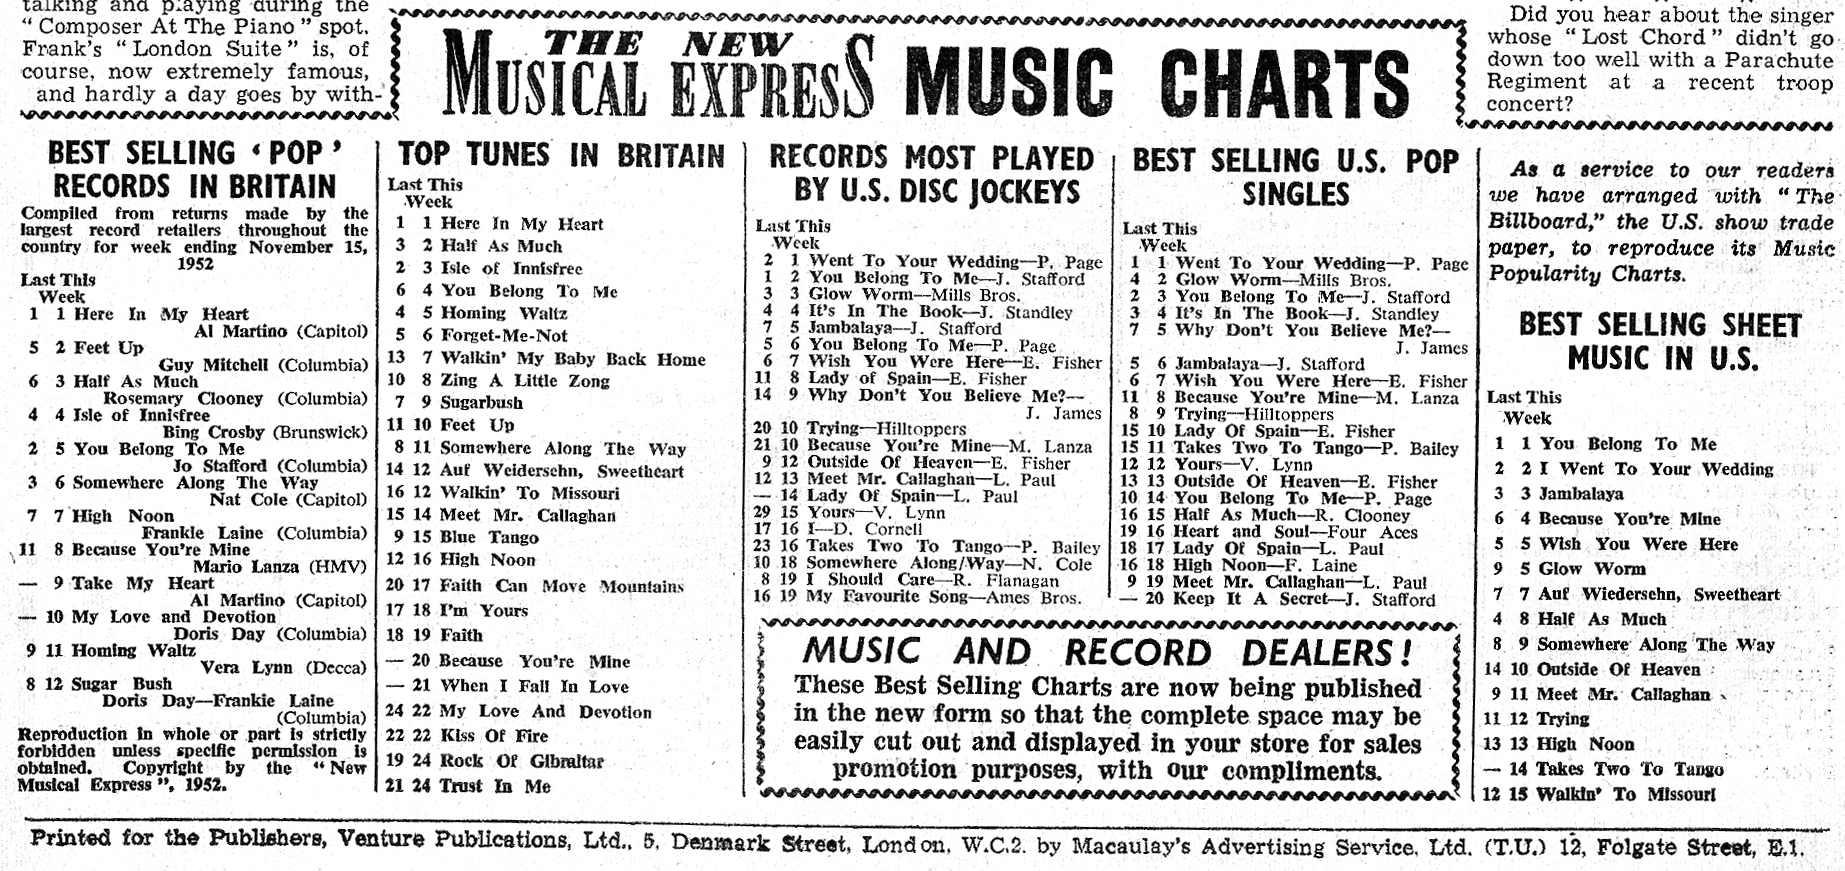 November 14, 1952: The UK's First Singles Chart